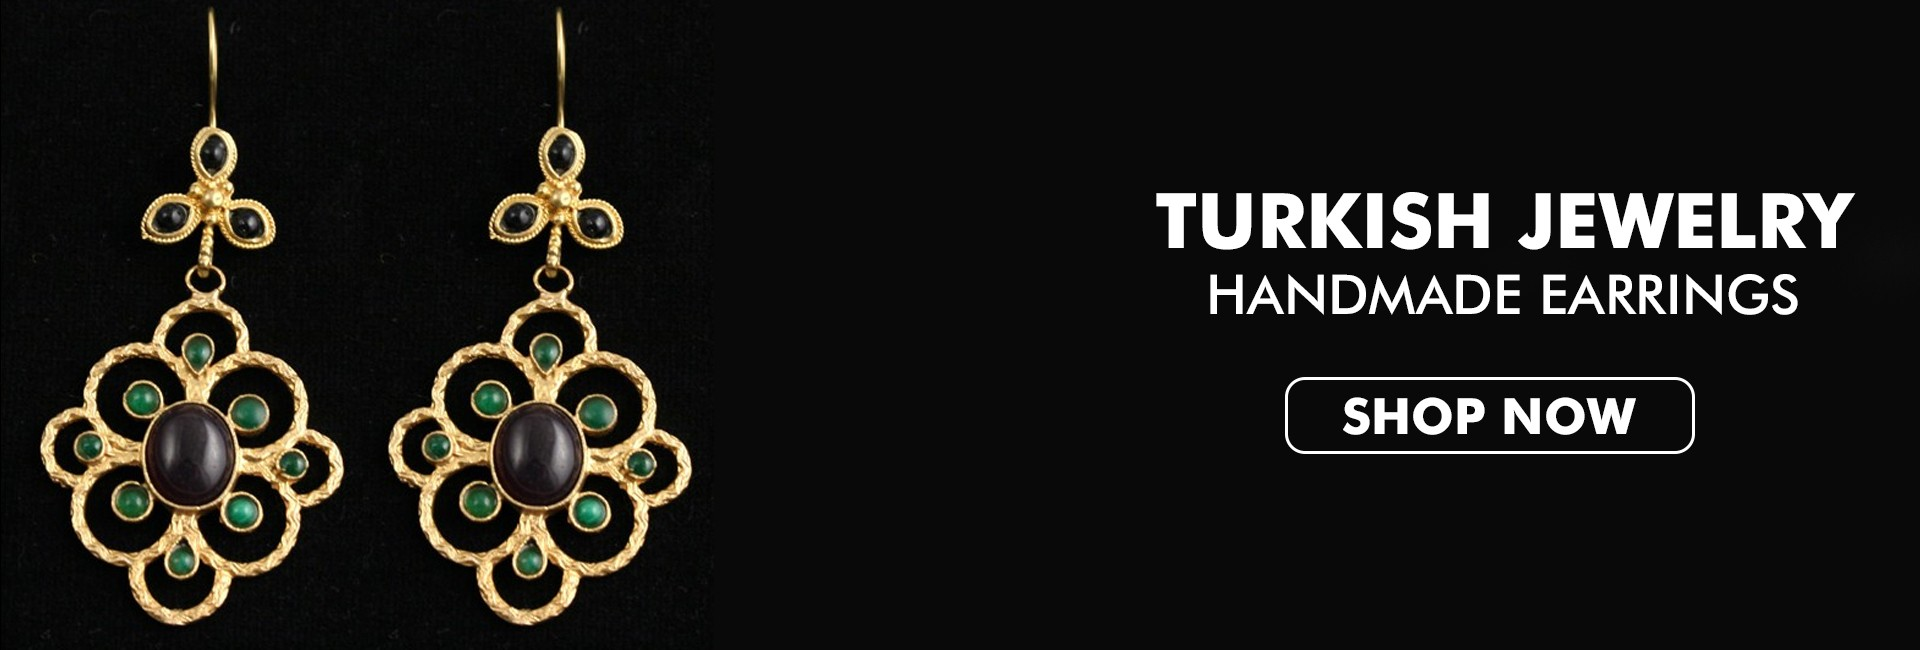 Turkish Jewelry